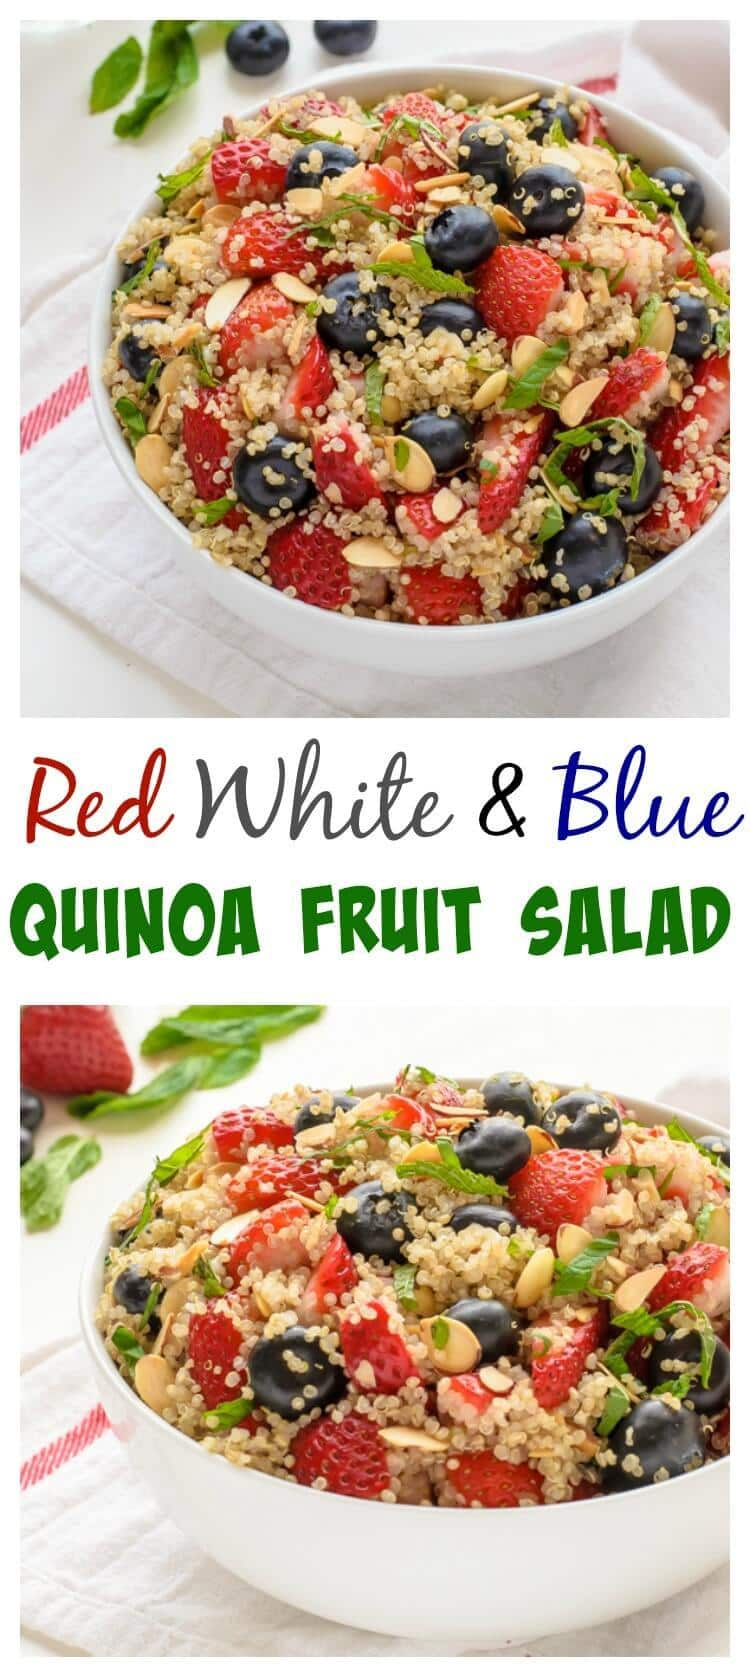 Red White and Blue Quinoa Fruit Salad. So cute for Memorial Day or the Fourth of July! Love this for breakfast and lunch too.